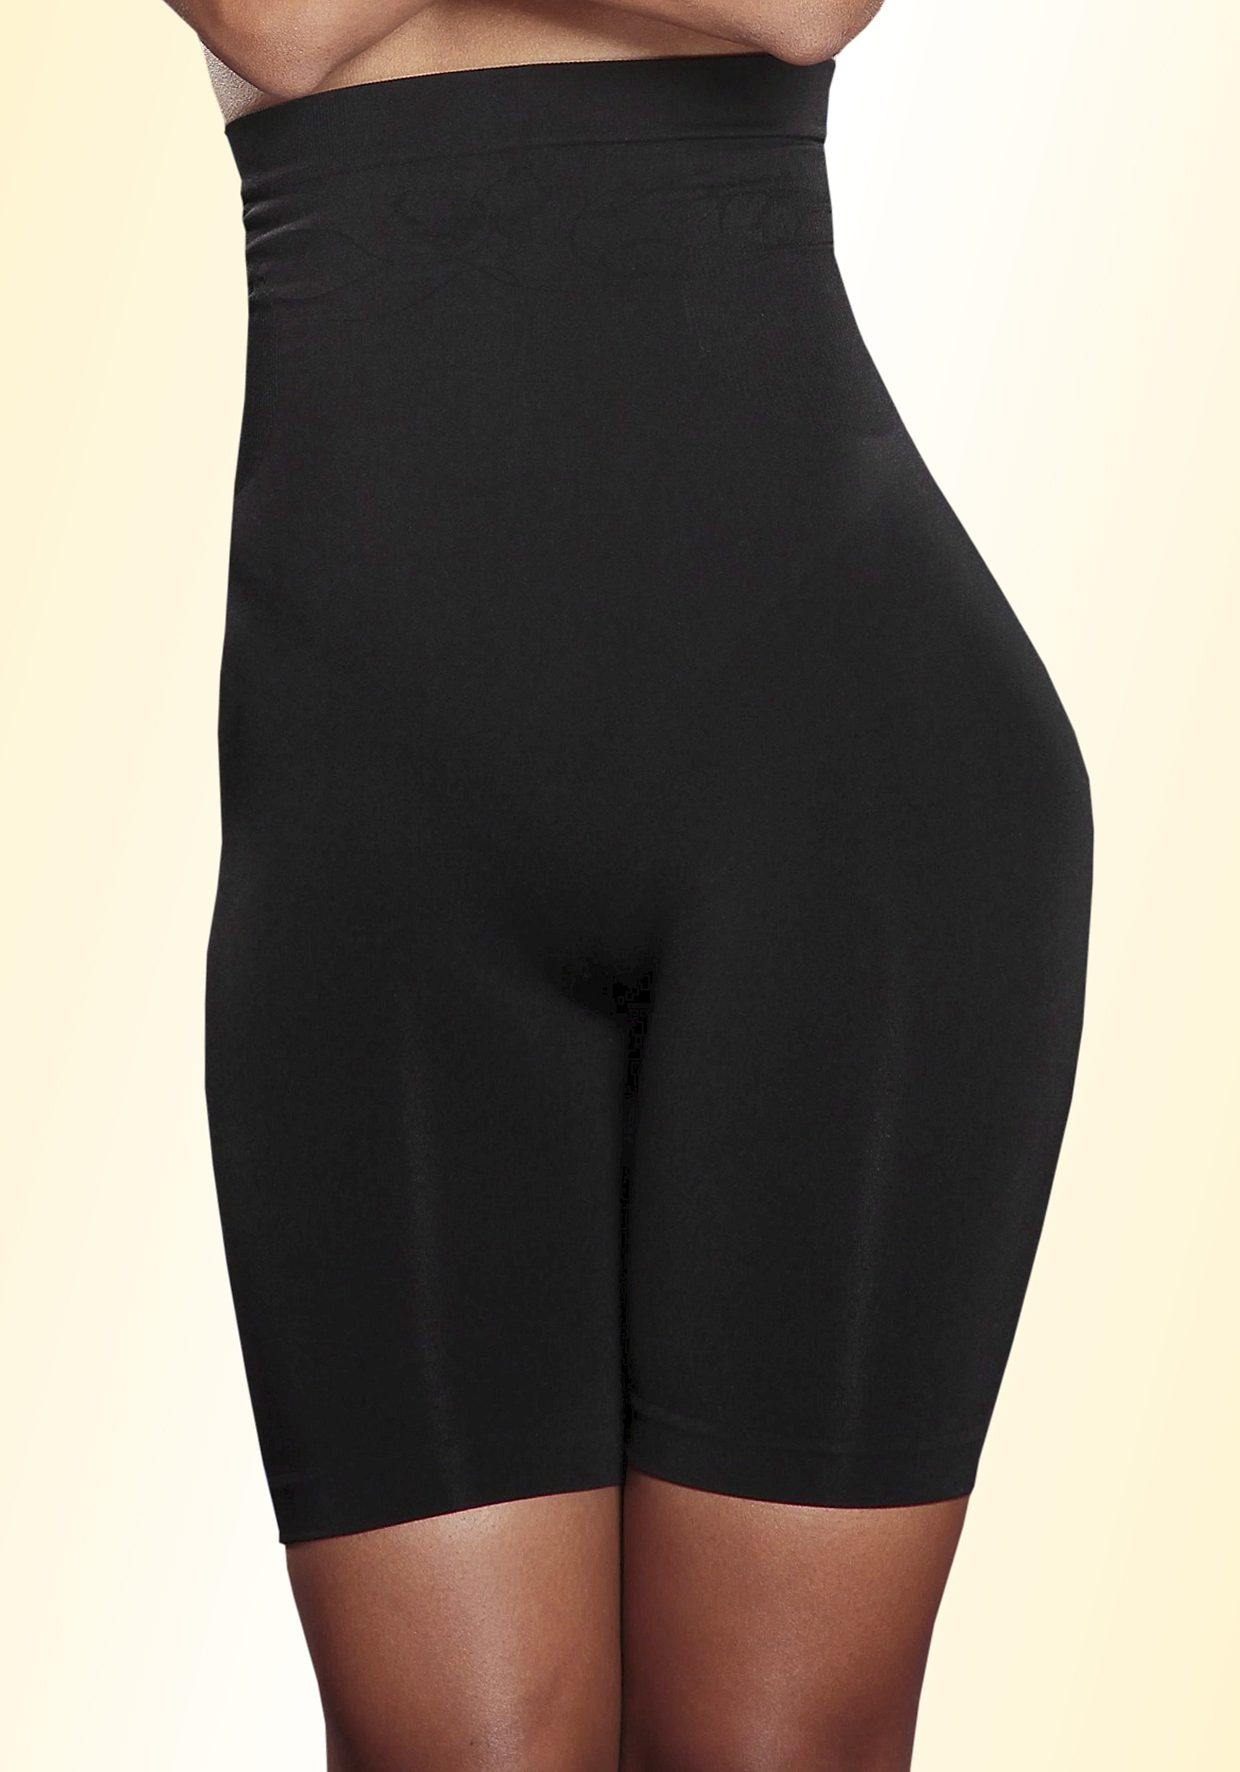 LASCANA Shaping-Hose mit hoher Taille